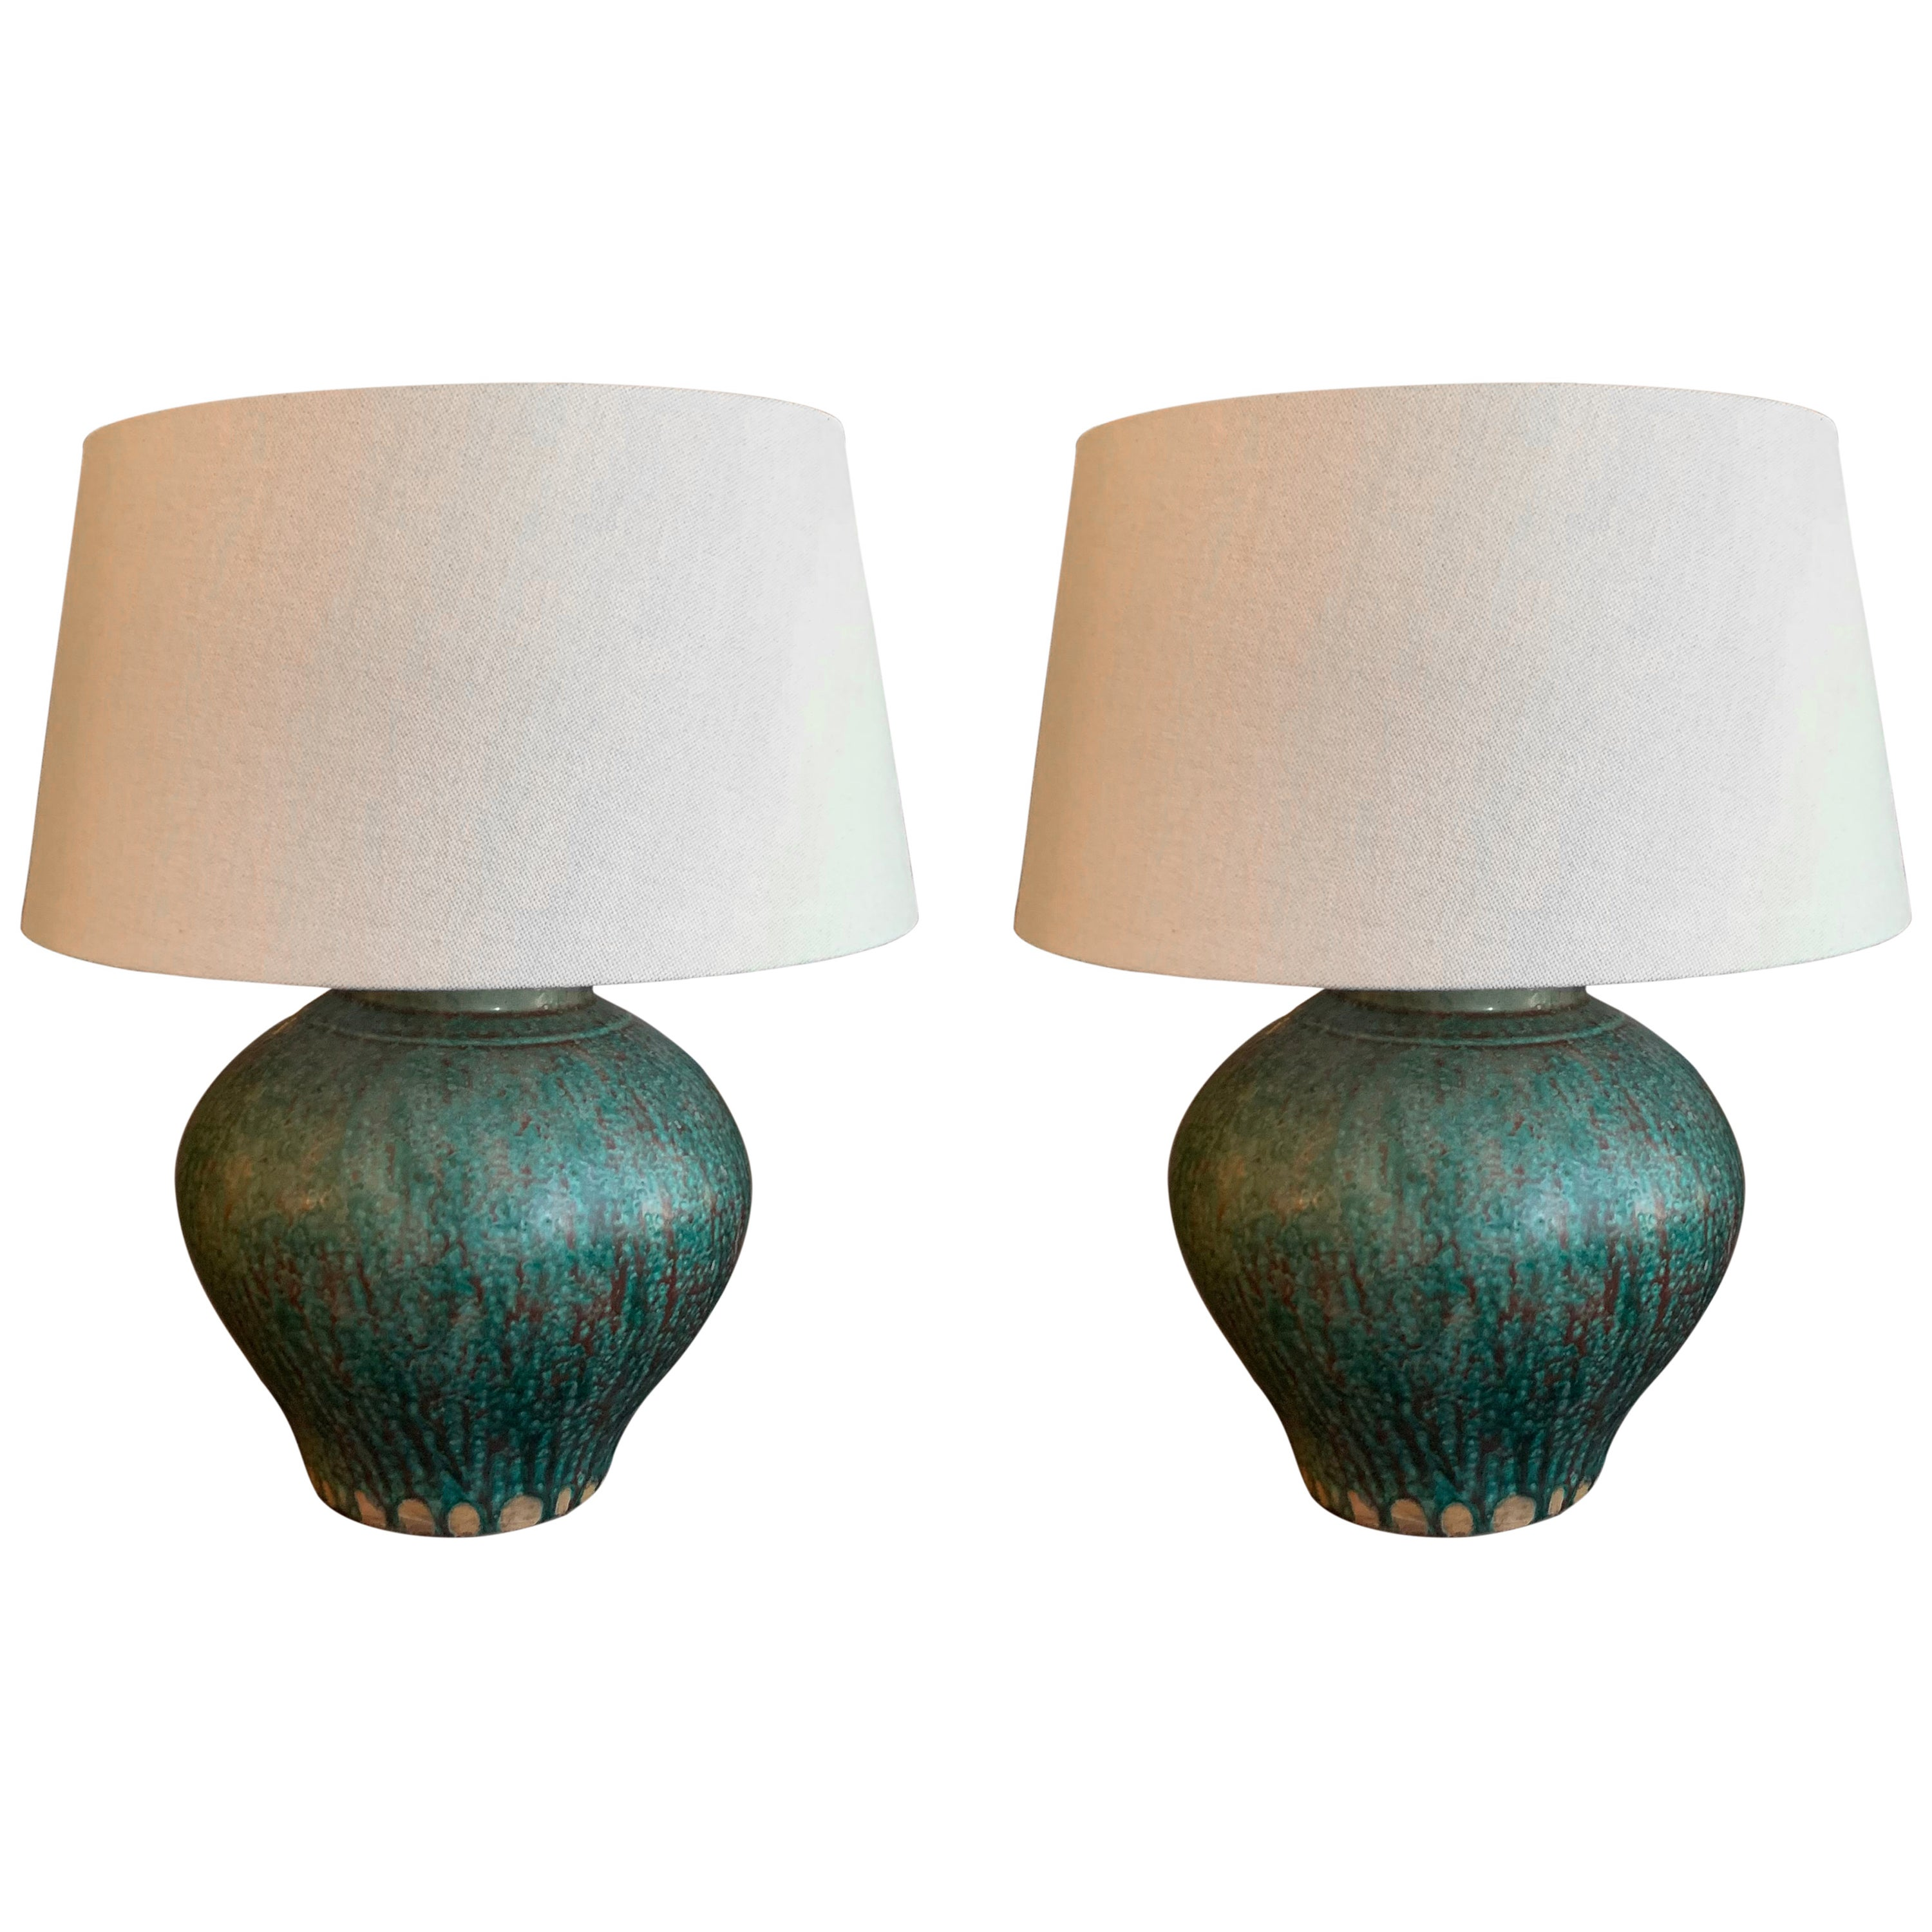 Textured Turquoise Pair Ginger Jar Shaped Lamps, China, Contemporary